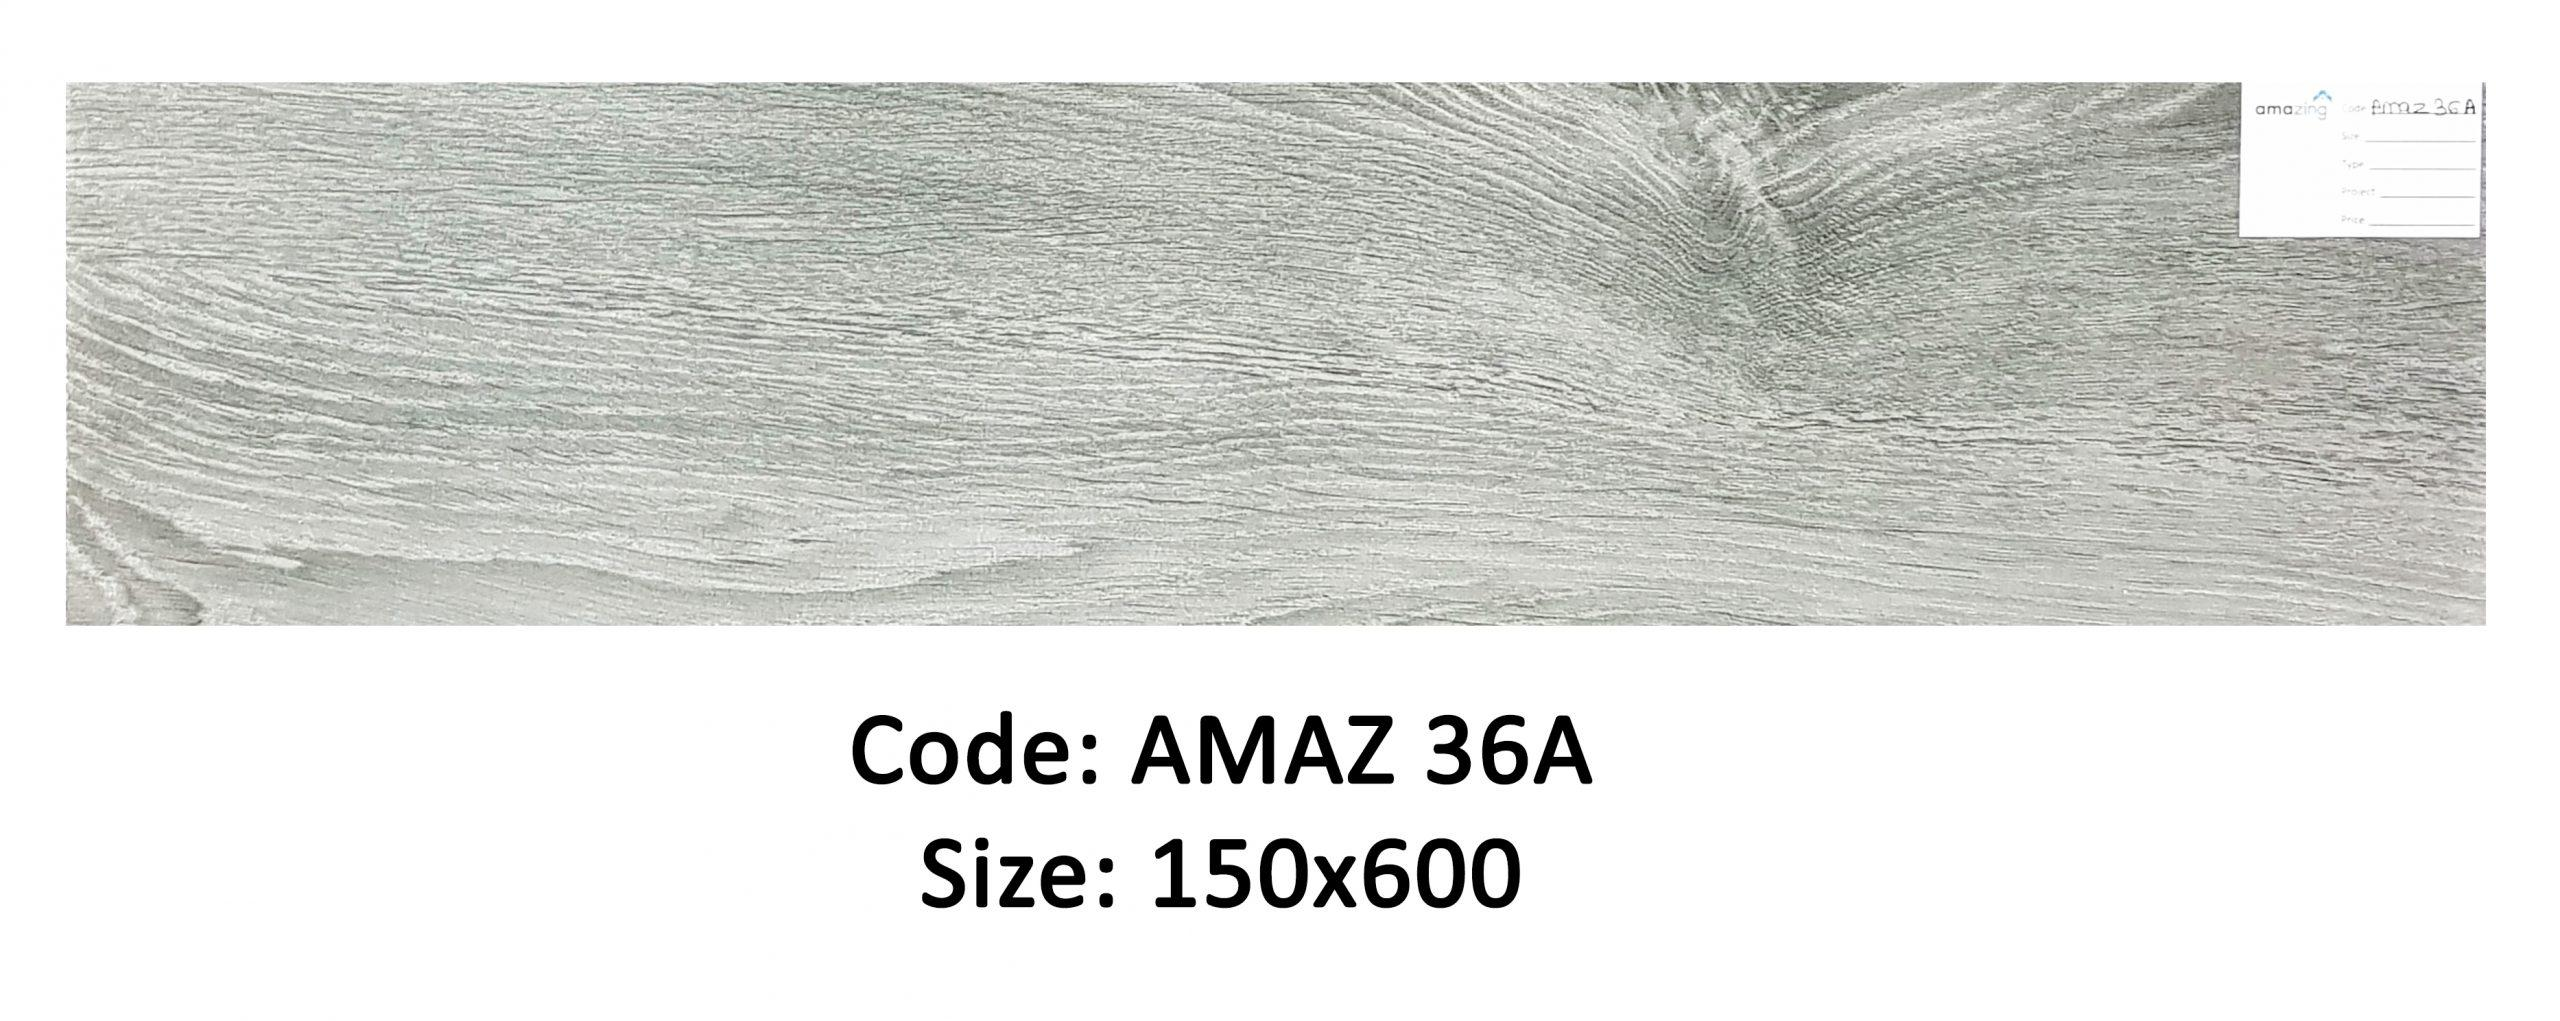 AMAZ 36A – Grey Timber look